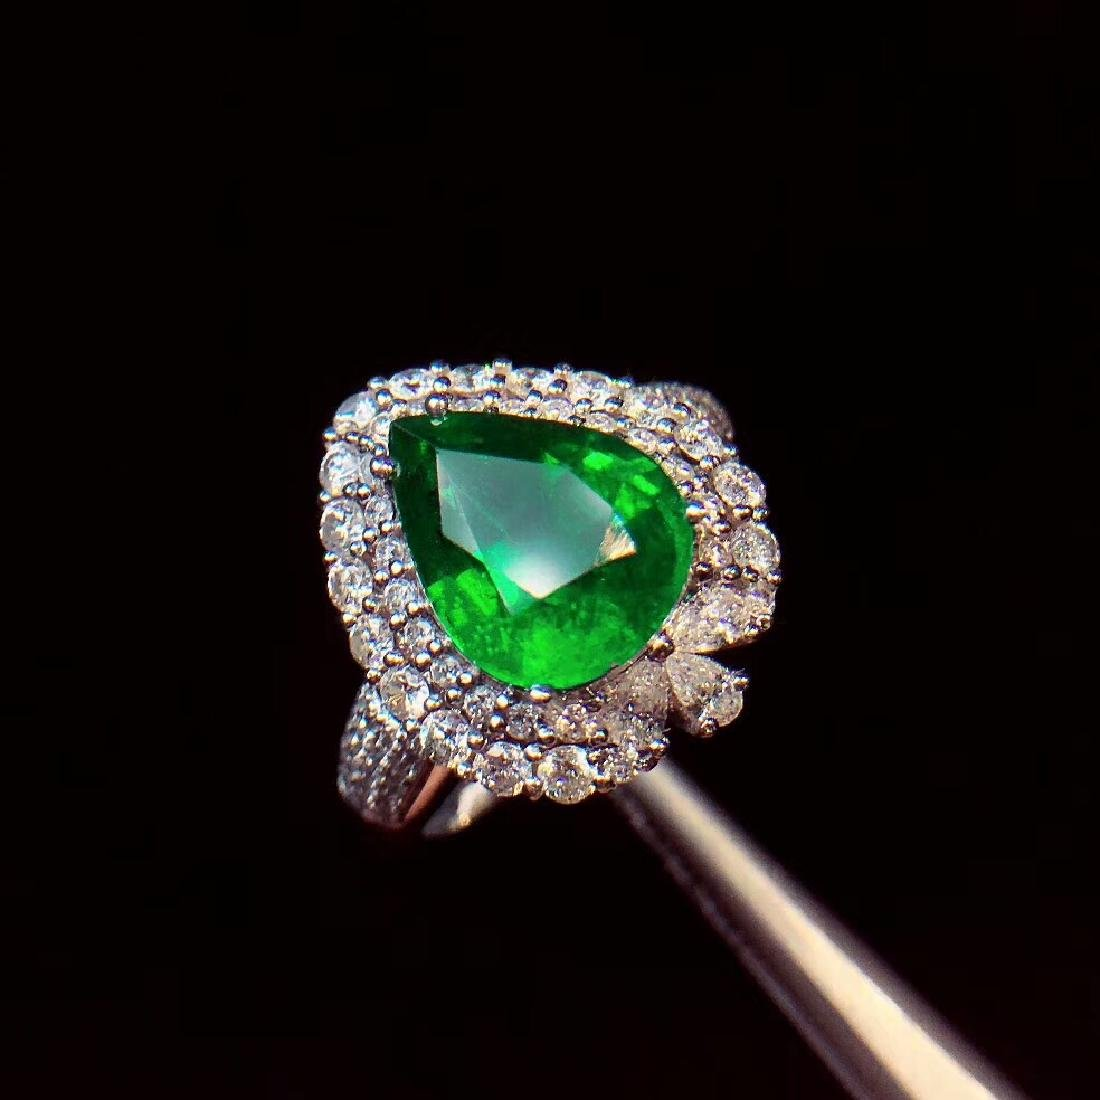 4ct Emerald Ring in 18kt white Gold - 4